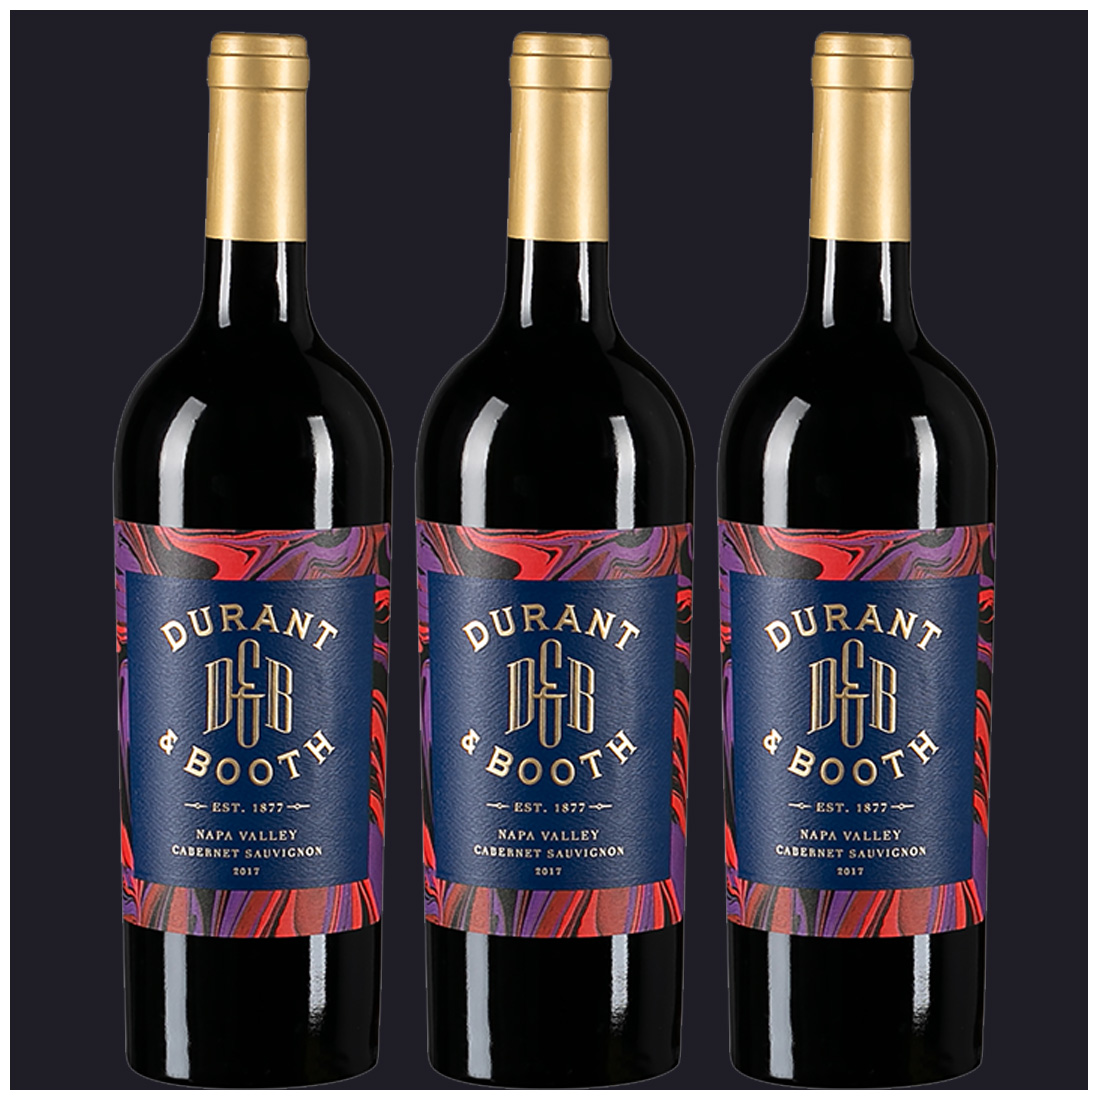 durant & booth napa valley cabernet sauvignon - Click here to download the Tasting Notes.